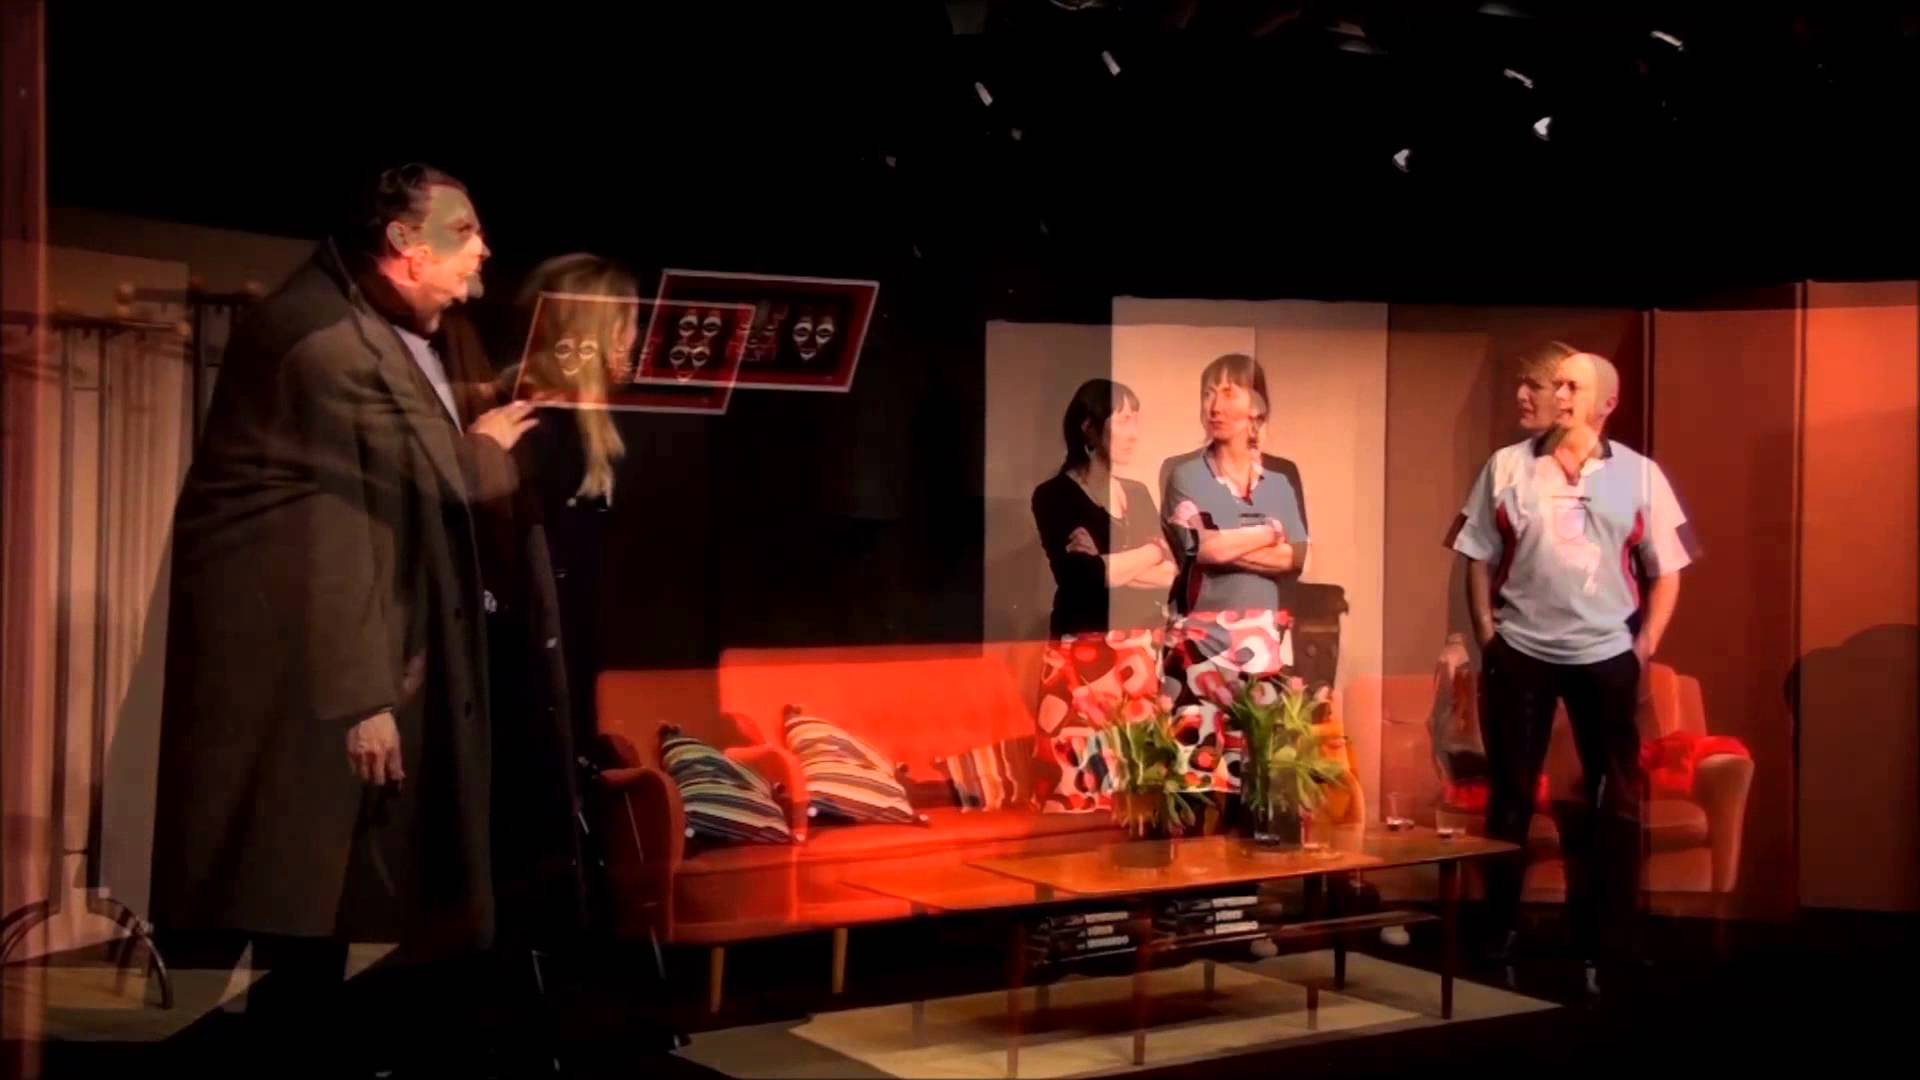 god of carnage God of carnage by yazmina reza directed by terry mcgovern produced by john griffin yazmina reza's 2006 play was originally written in french, and is about two sets of parents, one of whom's child has hurt the other at a public park.